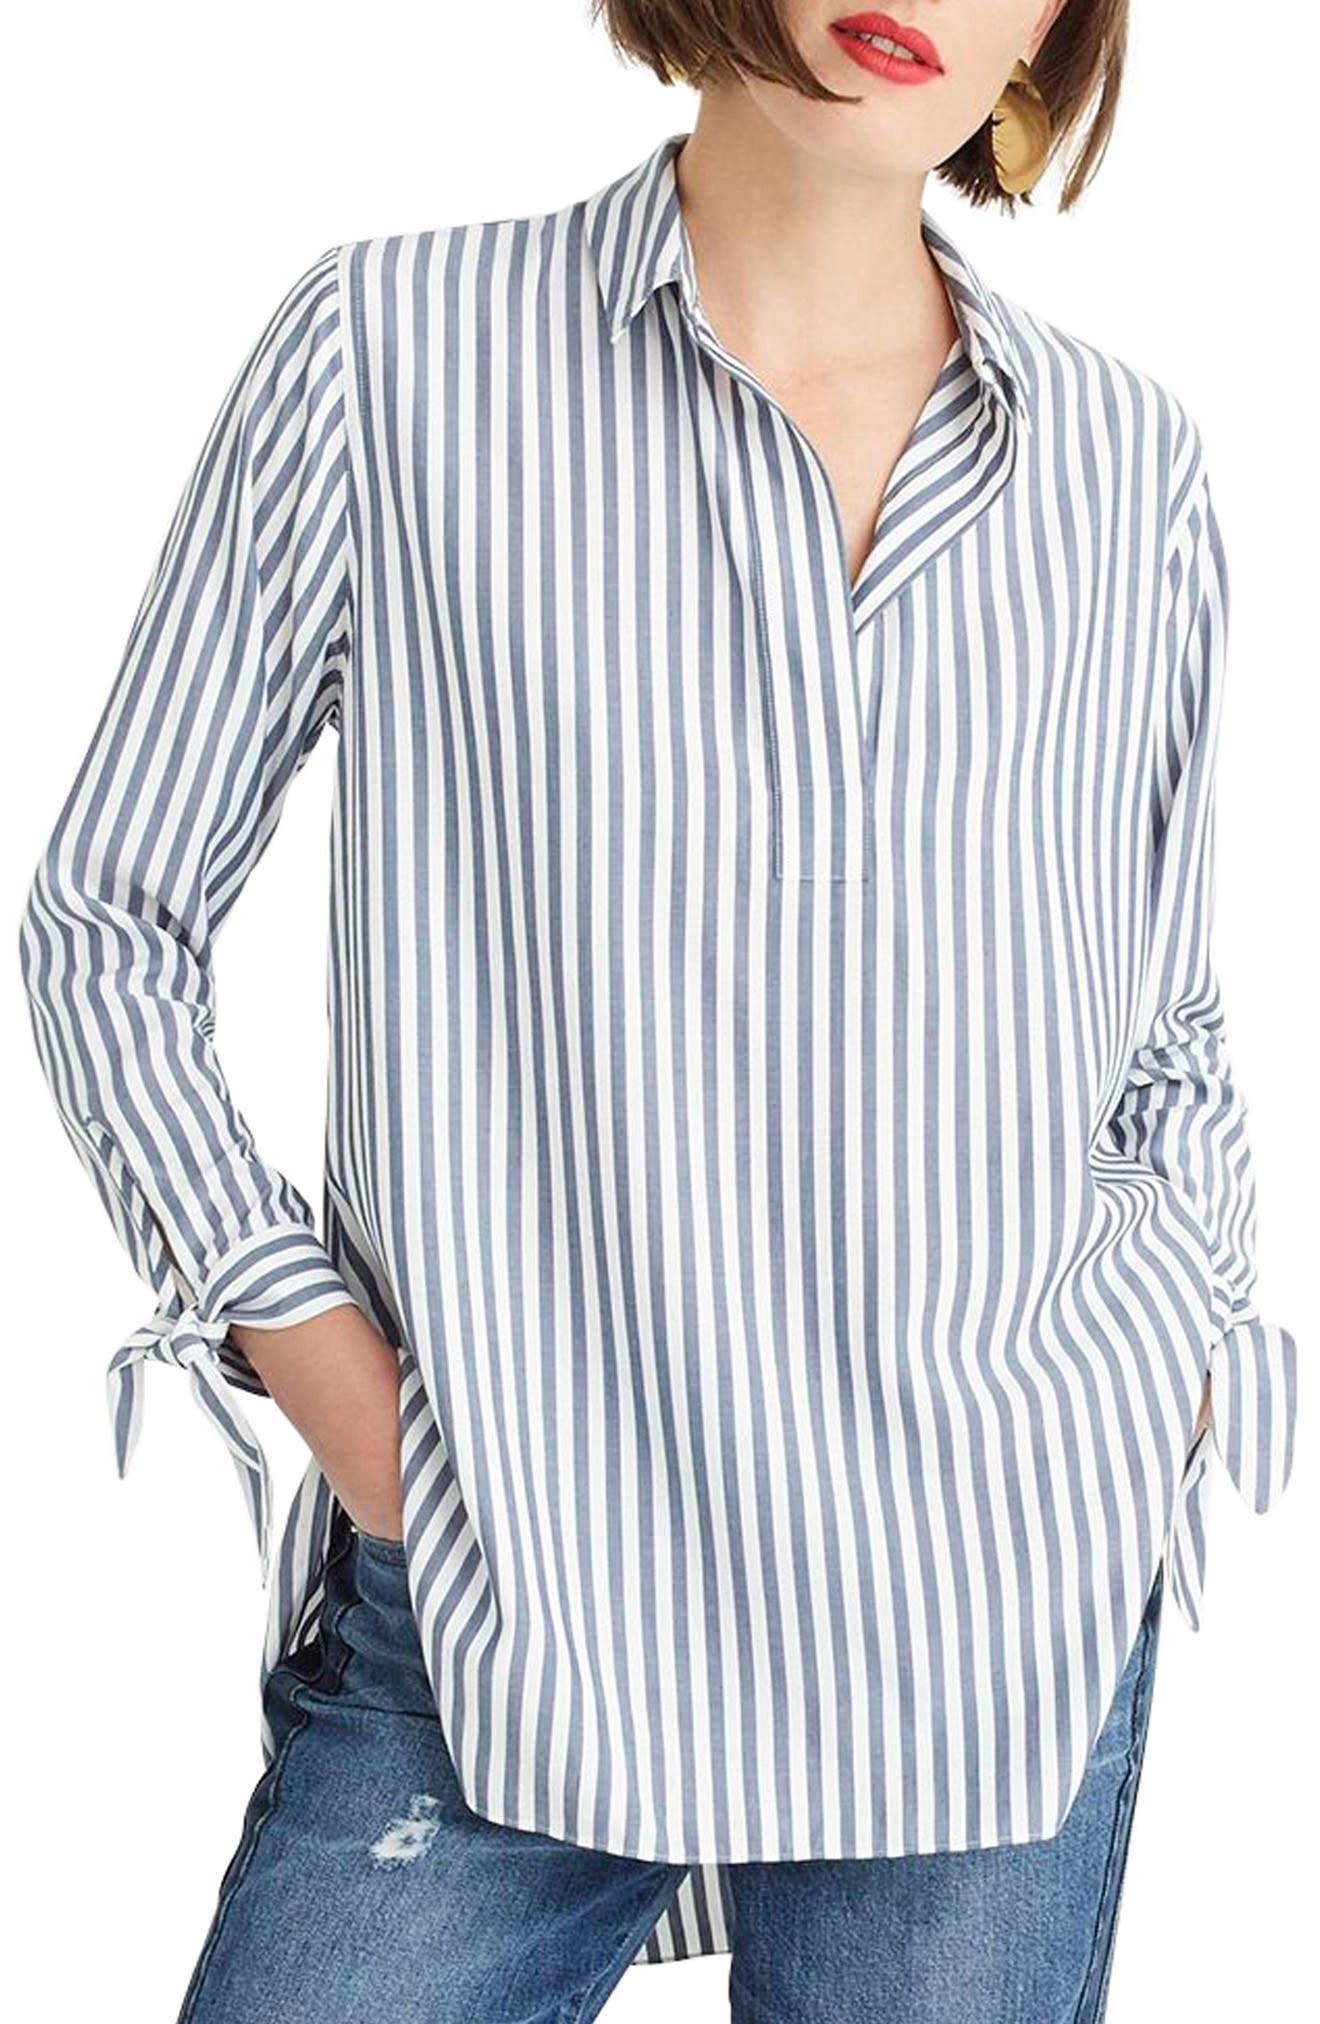 J.CREW, Collared Tie-Sleeve Popover Stripe Shirt, Main thumbnail 1, color, 400